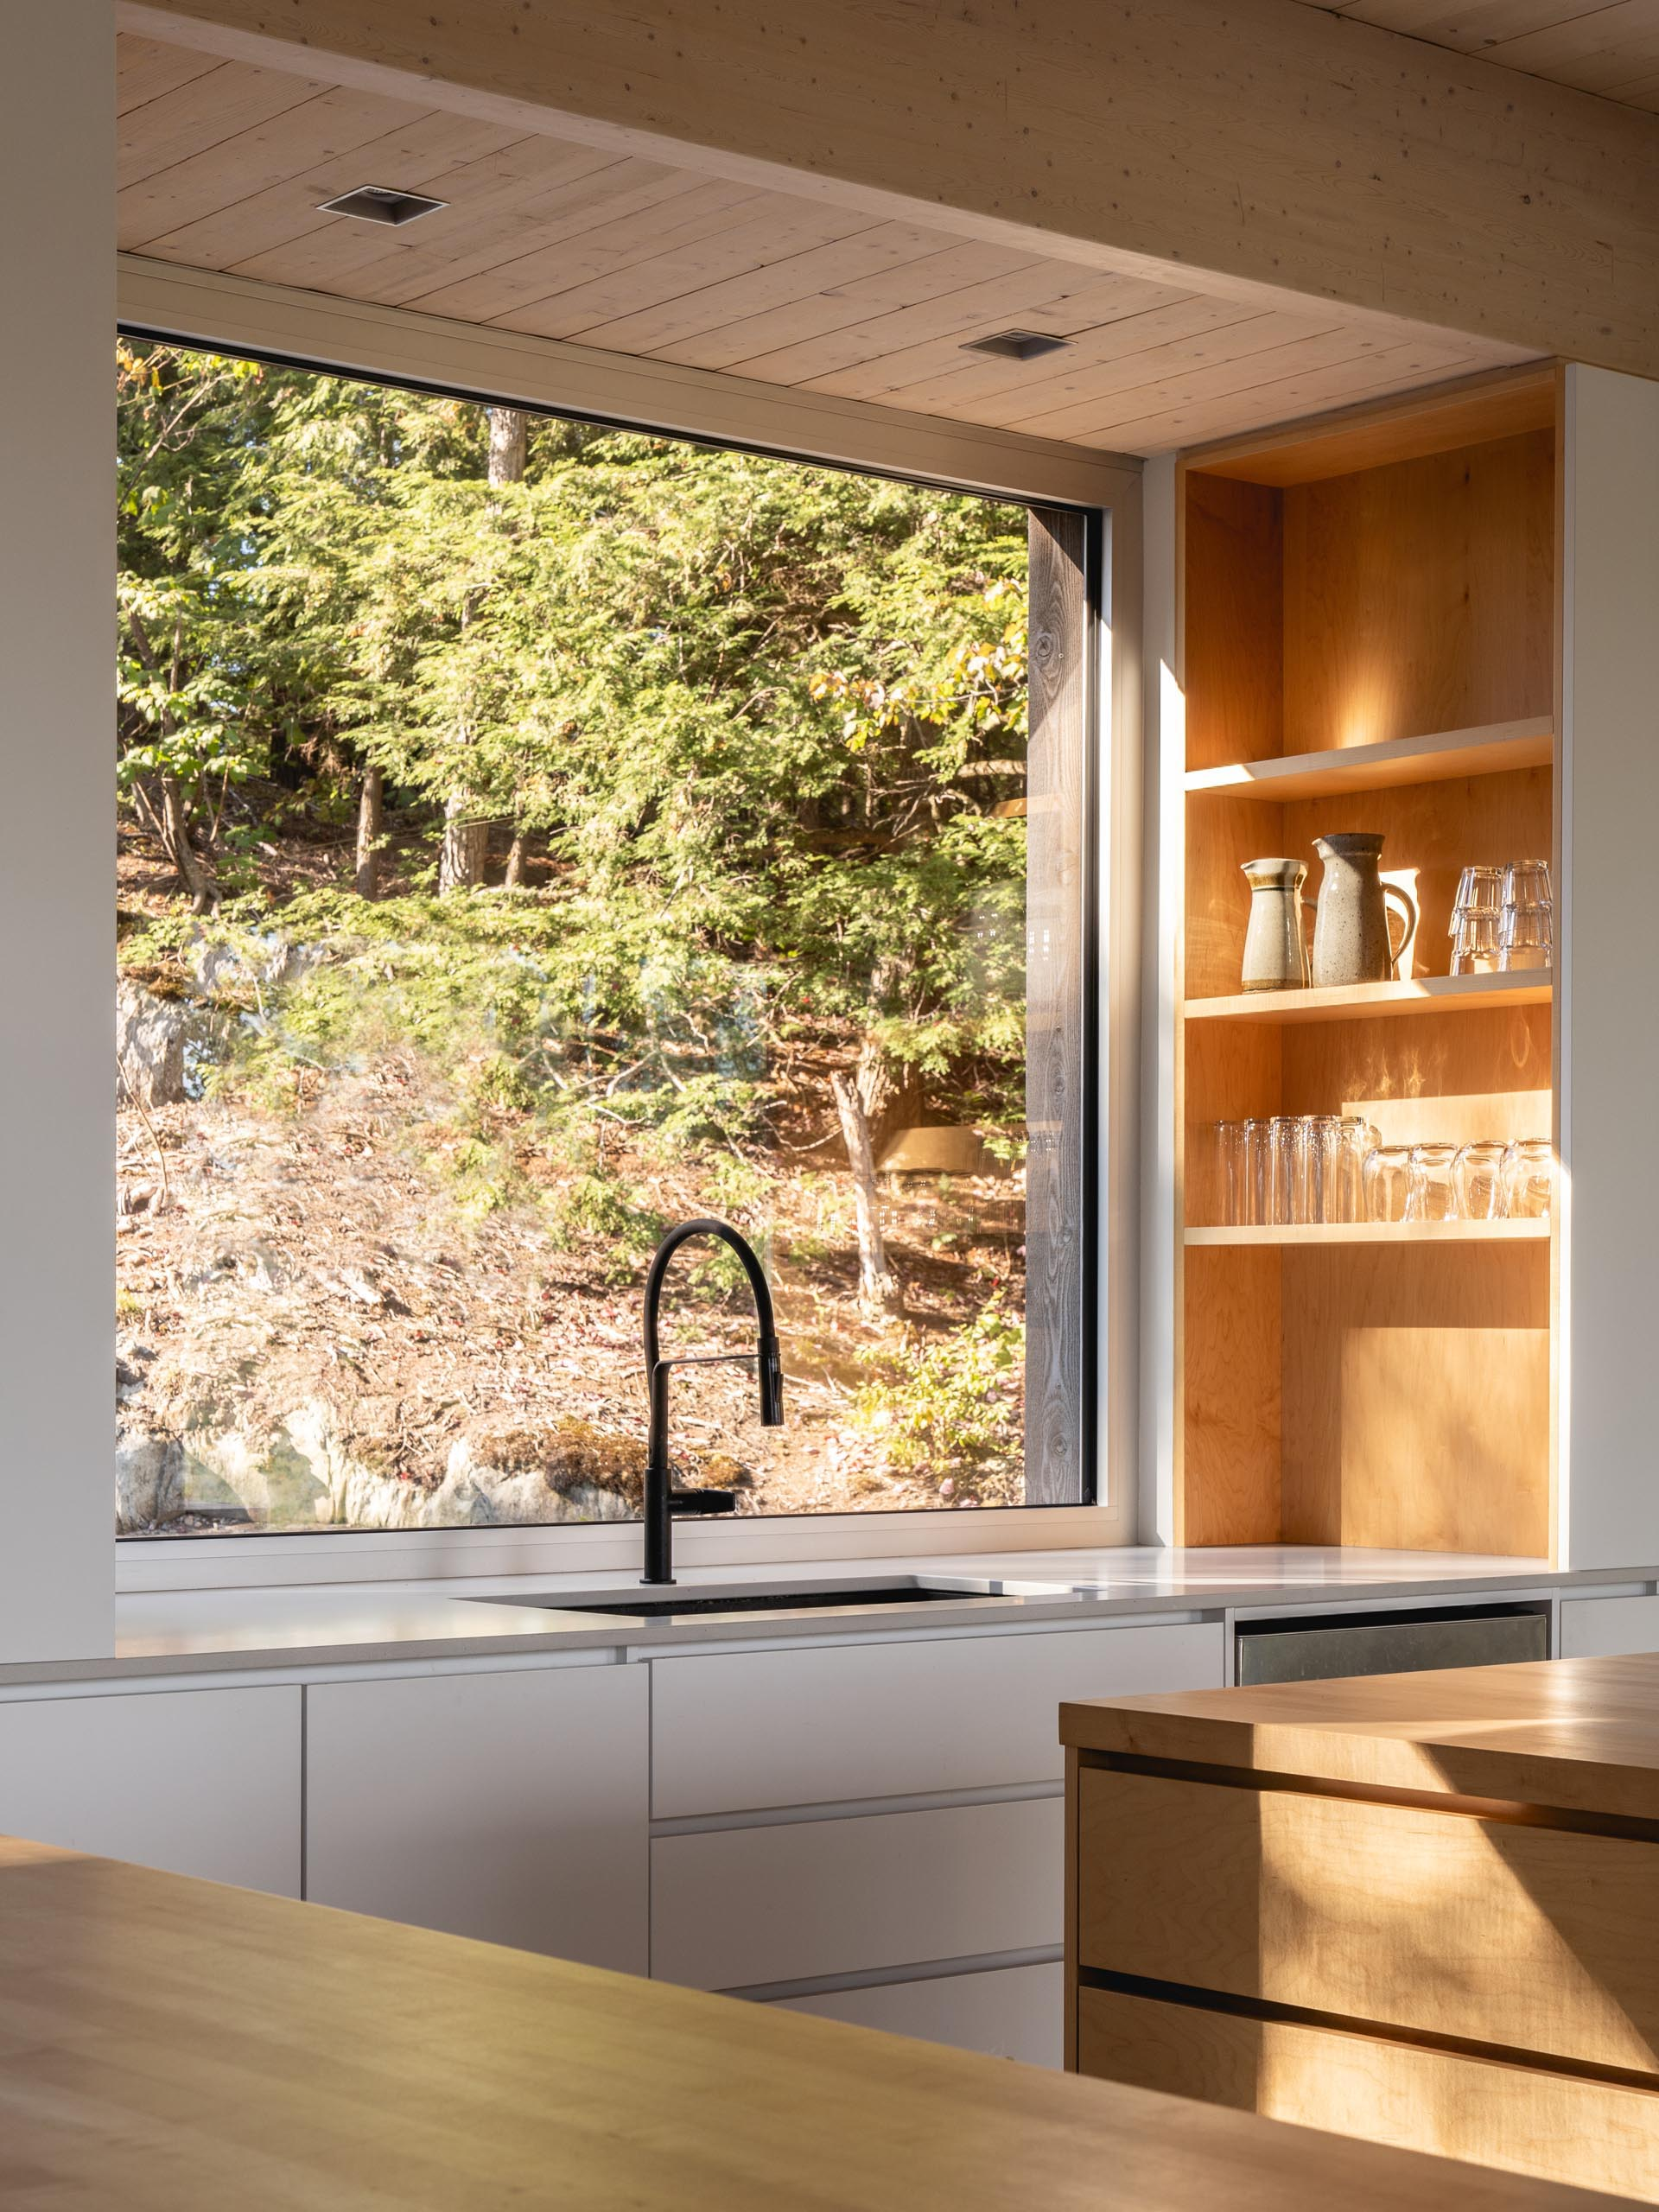 In this modern kitchen, there's two kitchen islands made from solid maple, polished concrete floors, and a large square window above the sink.